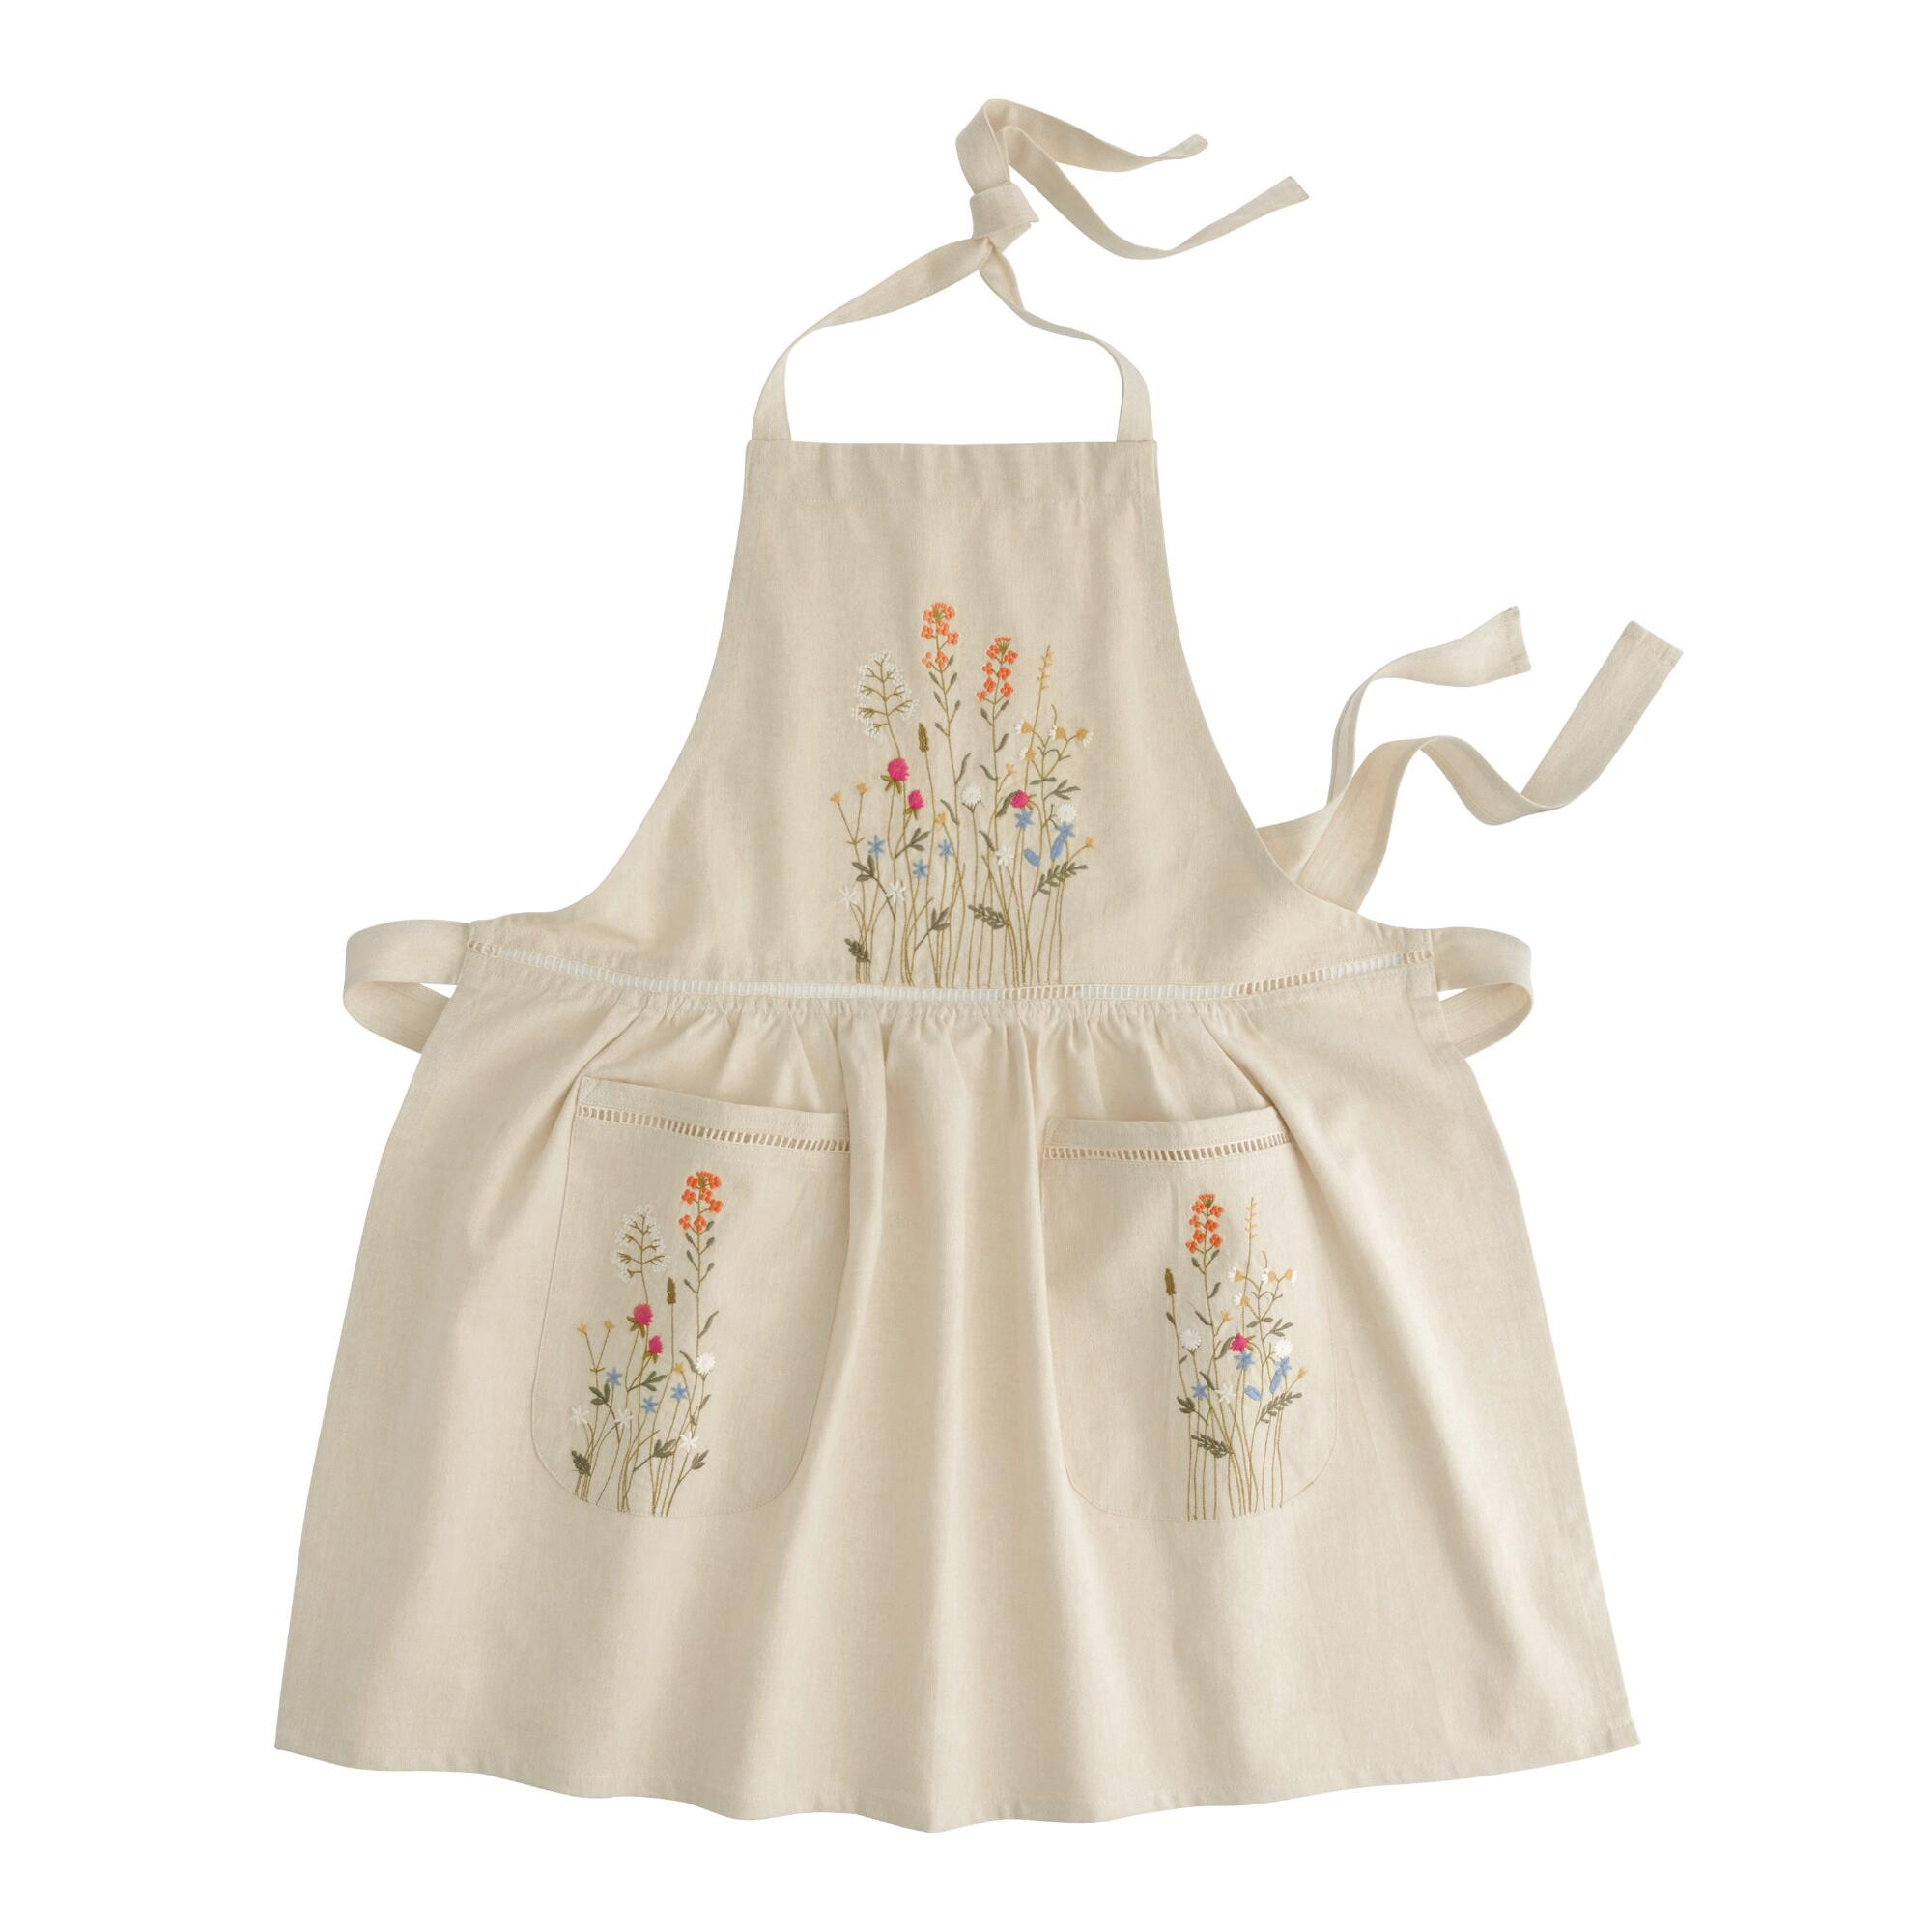 10 Things to Do with Vintage Aprons Natural Embroidered Floral Apron with Lace Trim by World Market $24.99 AT vintagedancer.com